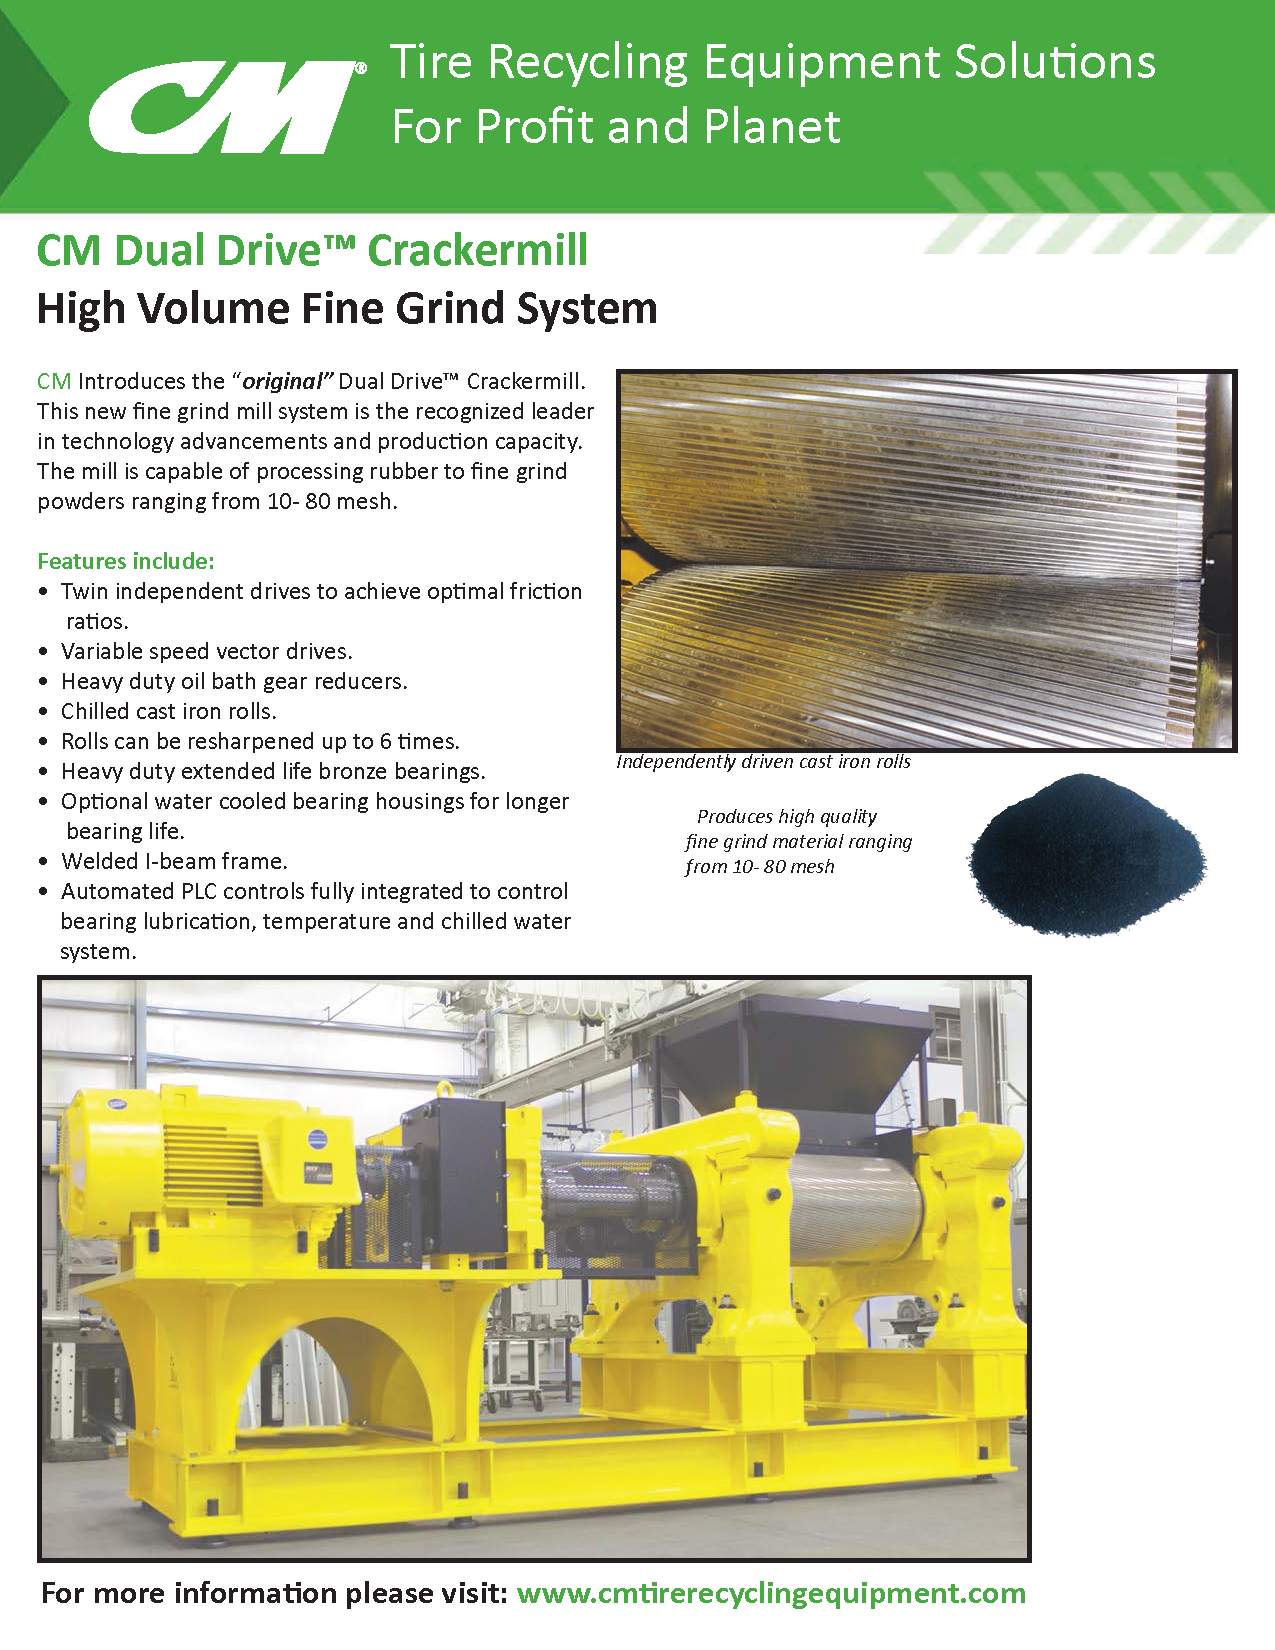 Learn more by viewing the CM Dual Drive Crackermill Brochure.